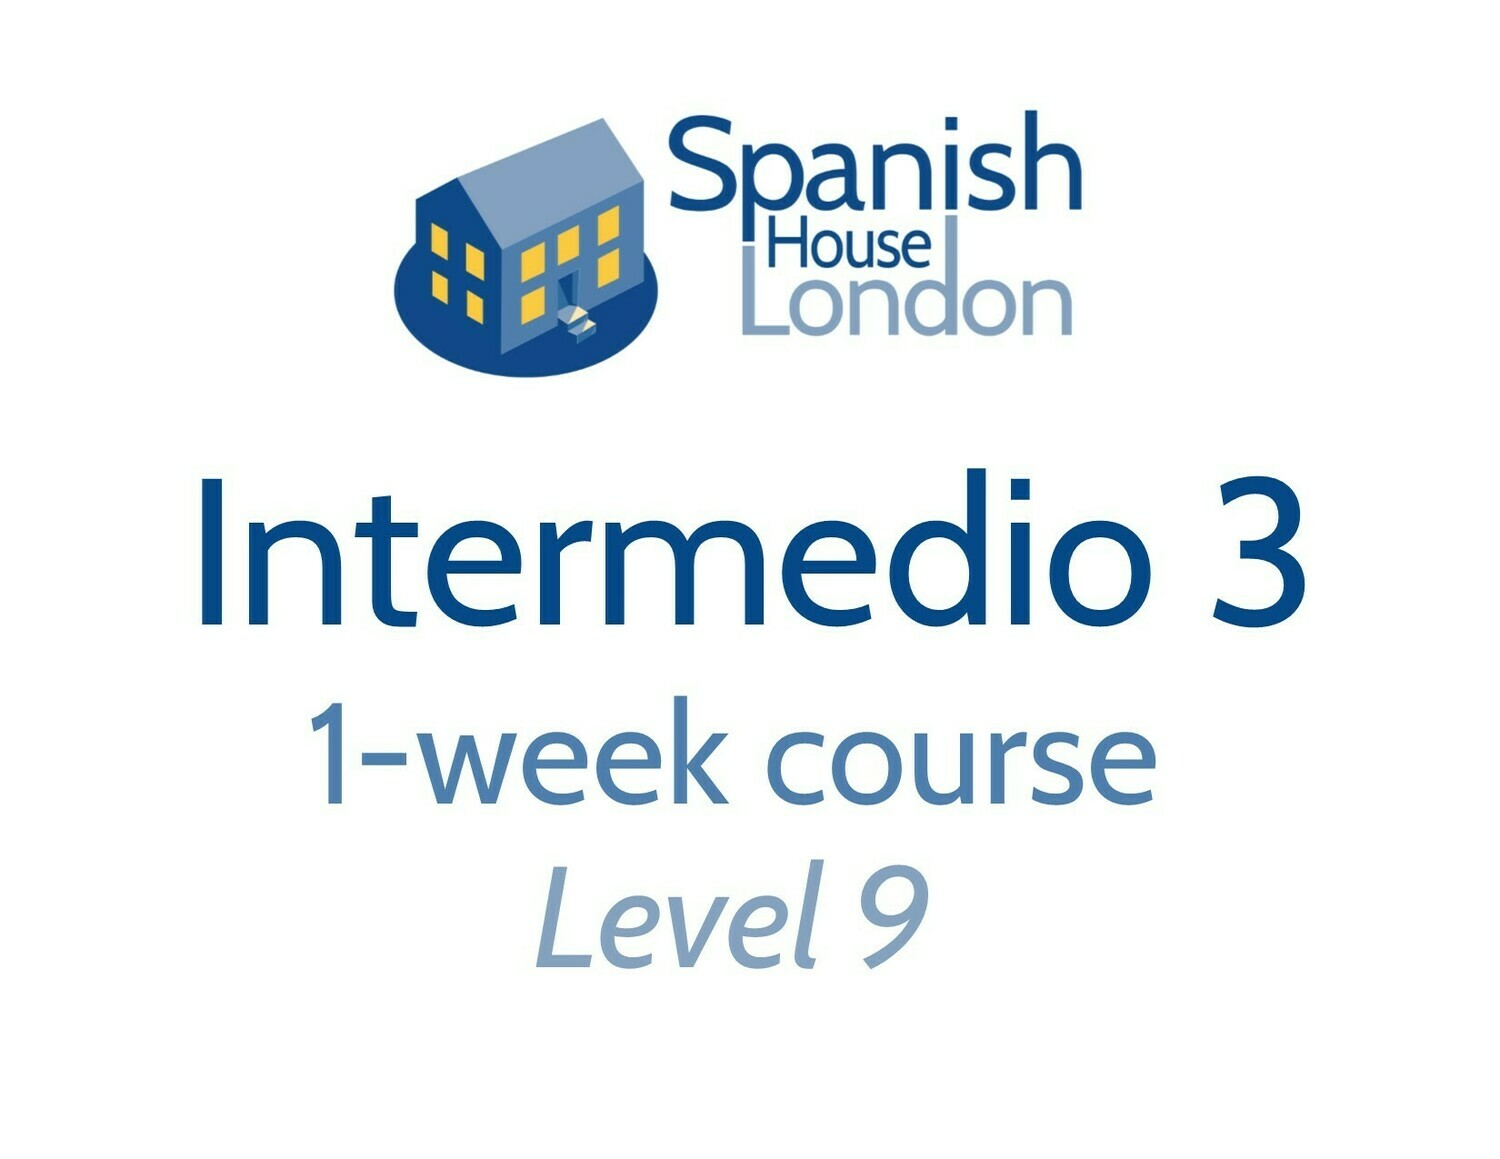 Intermedio 3 One-Week Intensive Course starting on 4th November at 10am in Clapham North